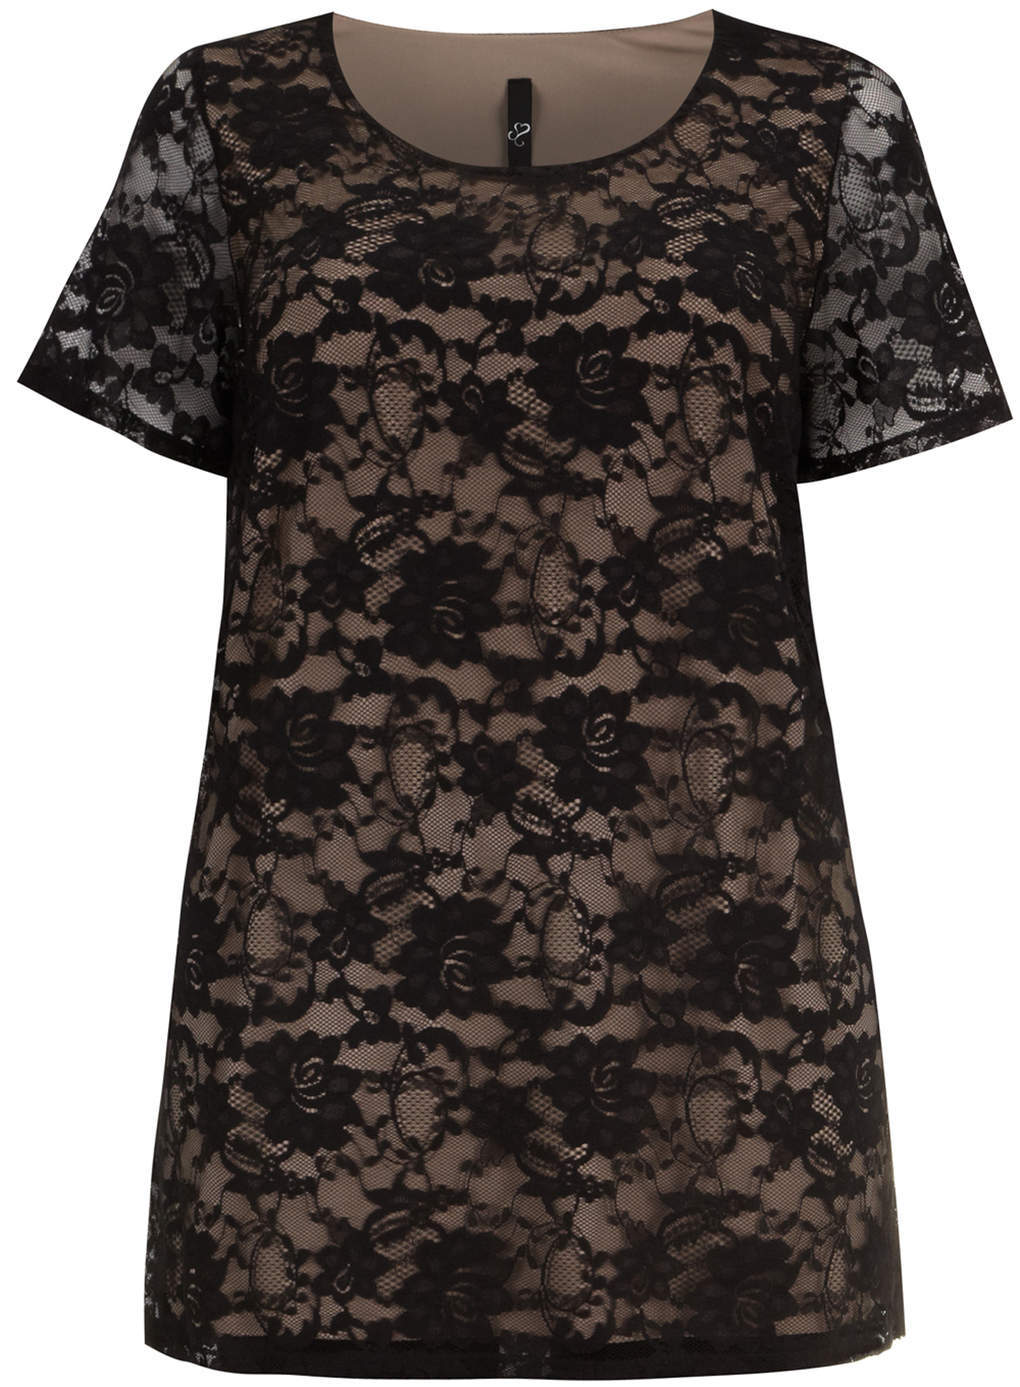 Black & Stone Lace Shell Top - neckline: round neck; length: below the bottom; style: t-shirt; predominant colour: taupe; secondary colour: black; occasions: casual, evening; fibres: nylon - mix; fit: straight cut; sleeve length: long sleeve; sleeve style: standard; texture group: lace; pattern type: fabric; pattern: patterned/print; trends: lace; season: s/s 2014